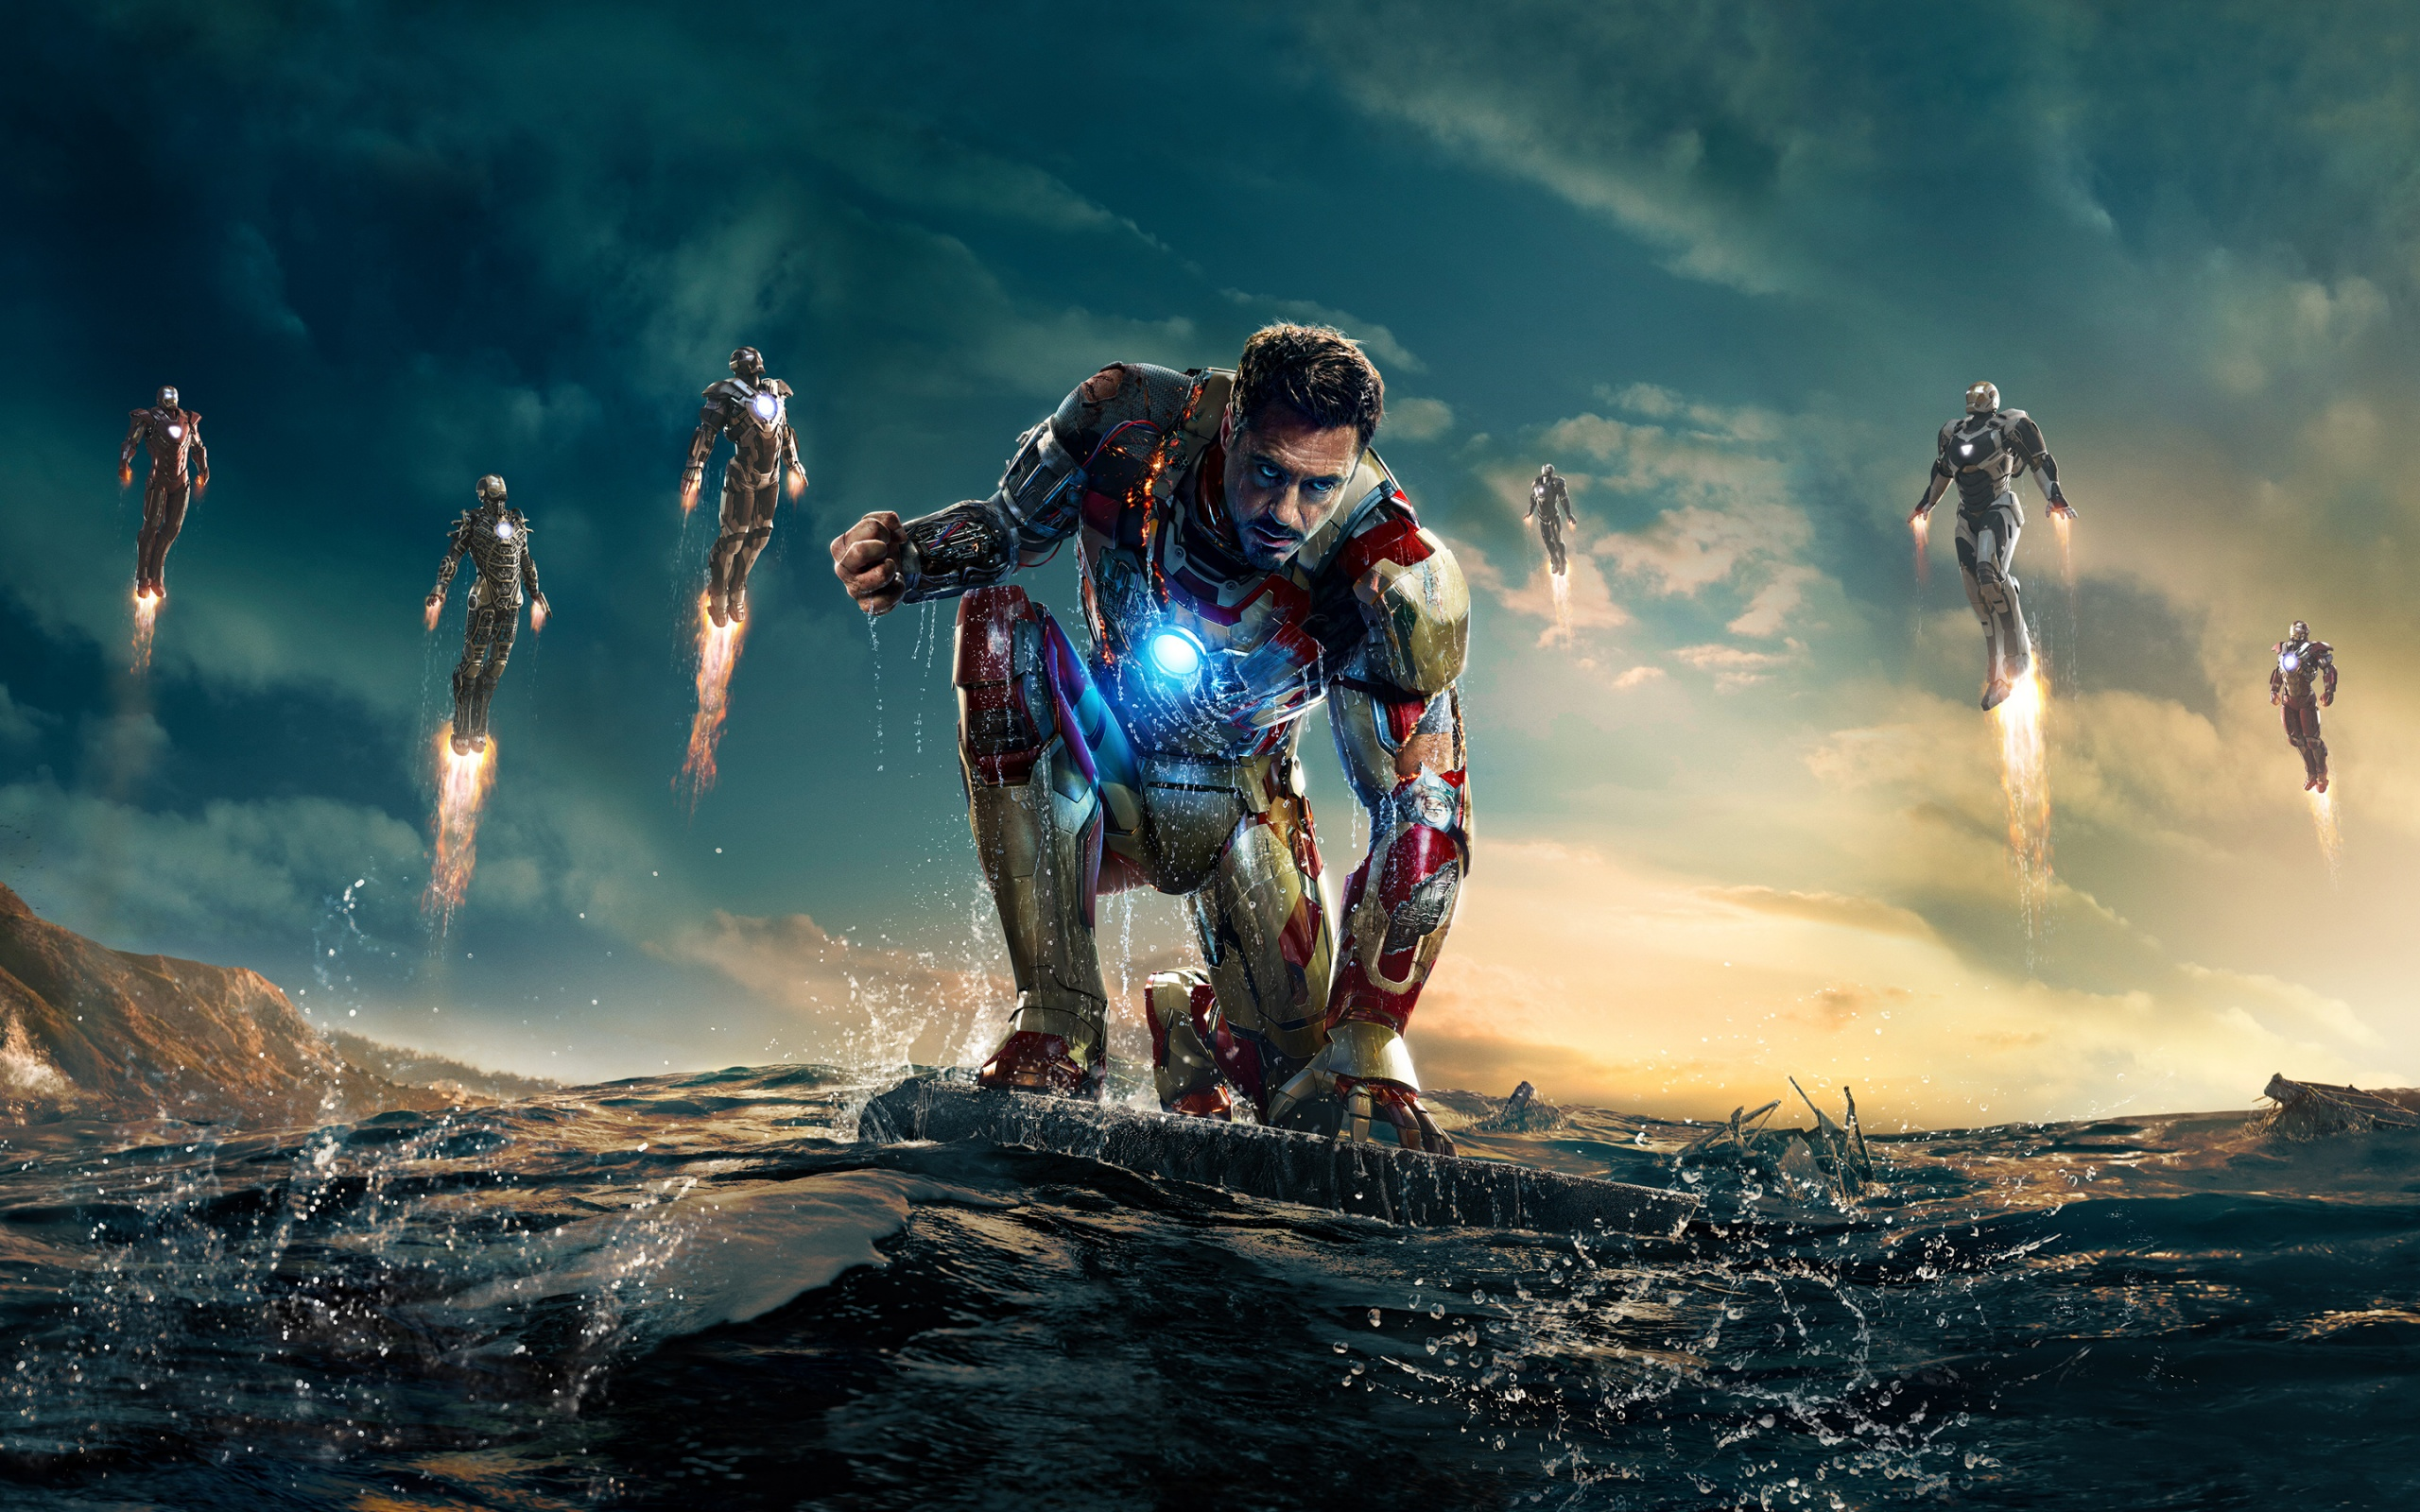 iron man 3 new wallpapers in jpg format for free download